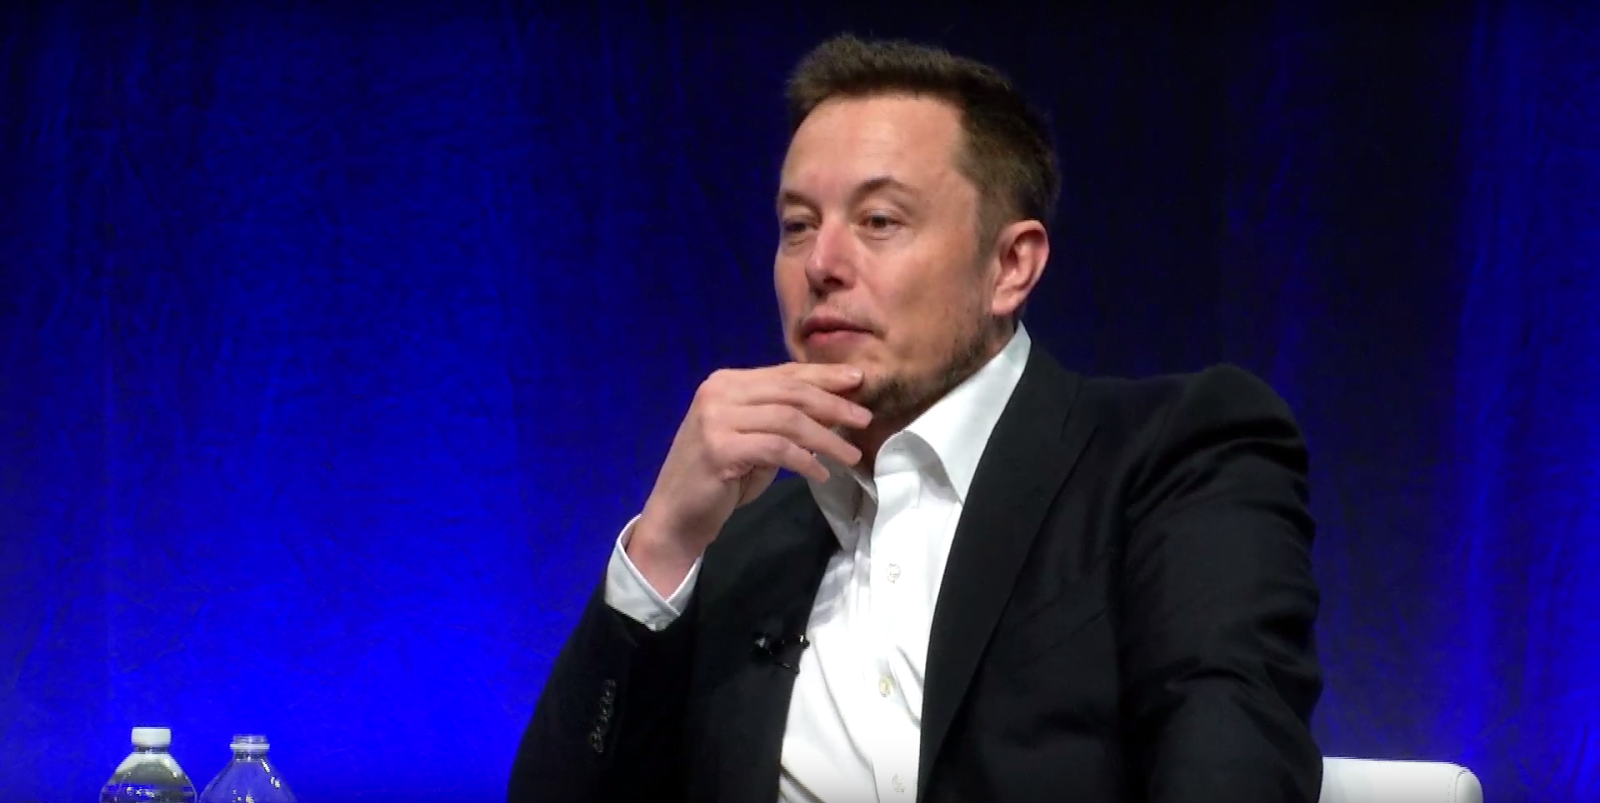 Elon Musk says shelter-in-place orders during COVID-19 are 'fascist' - The  Verge | 803x1600